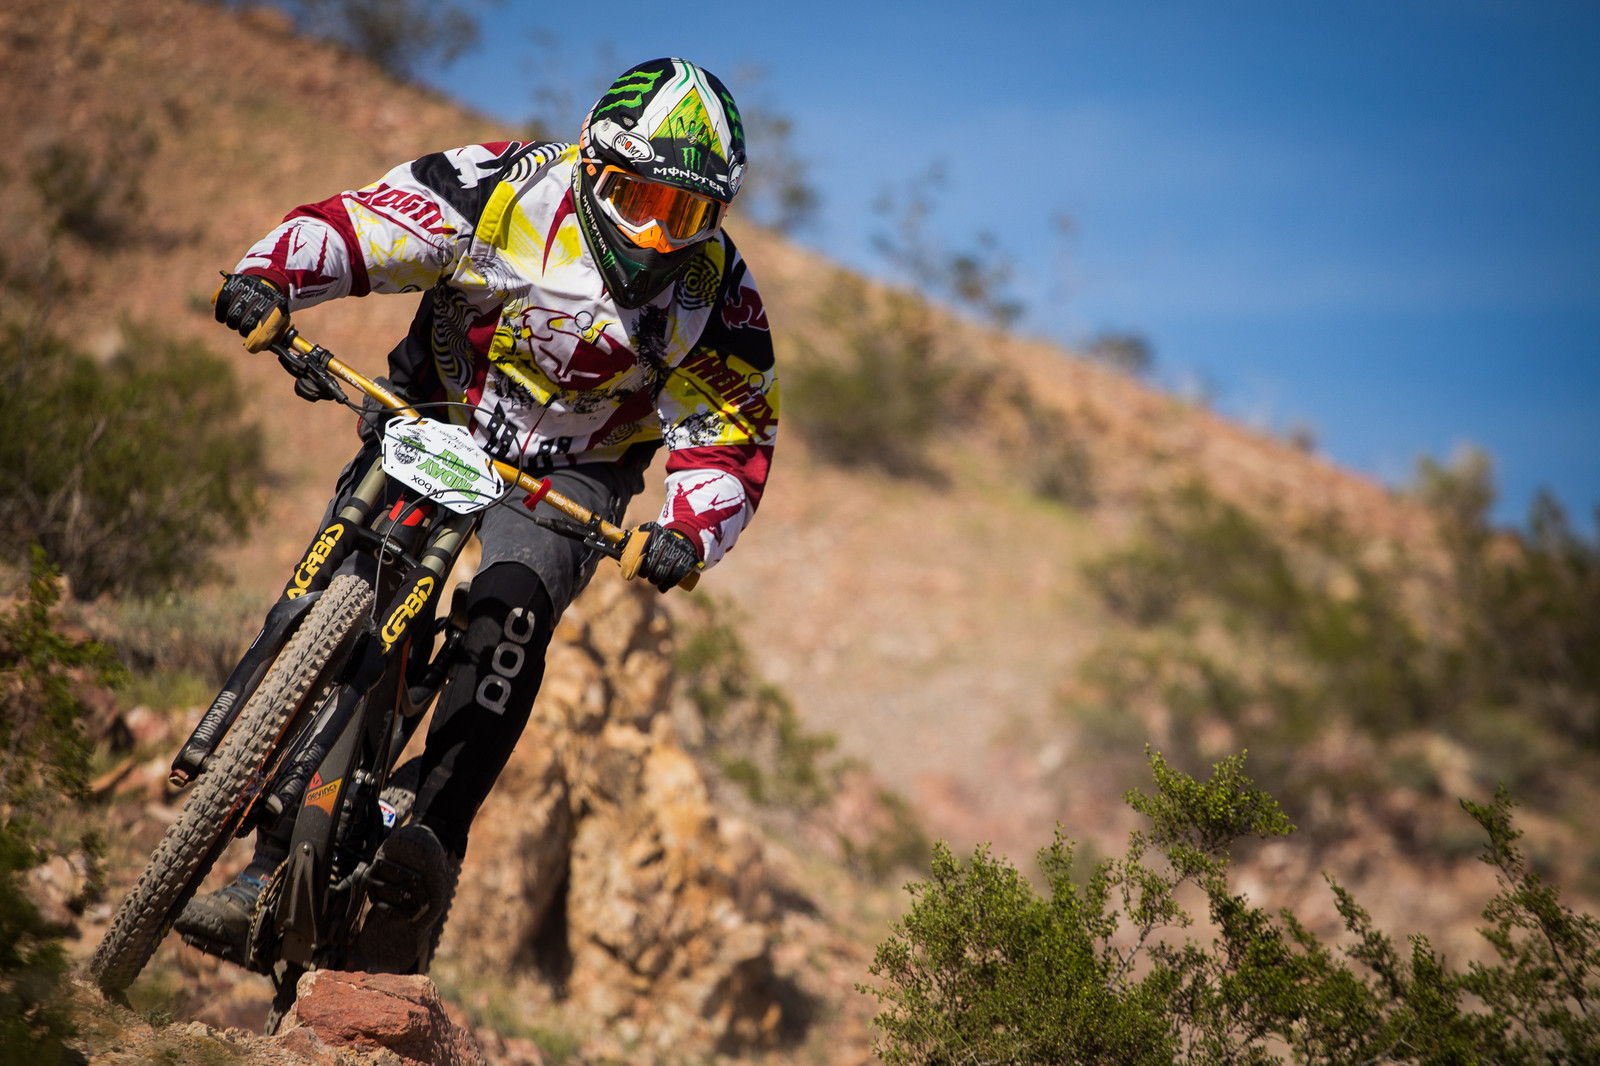 2017 Reaper Madness DH at Bootleg Canyon-38 - 2017 Reaper Madness DH Photos - Mountain Biking Pictures - Vital MTB